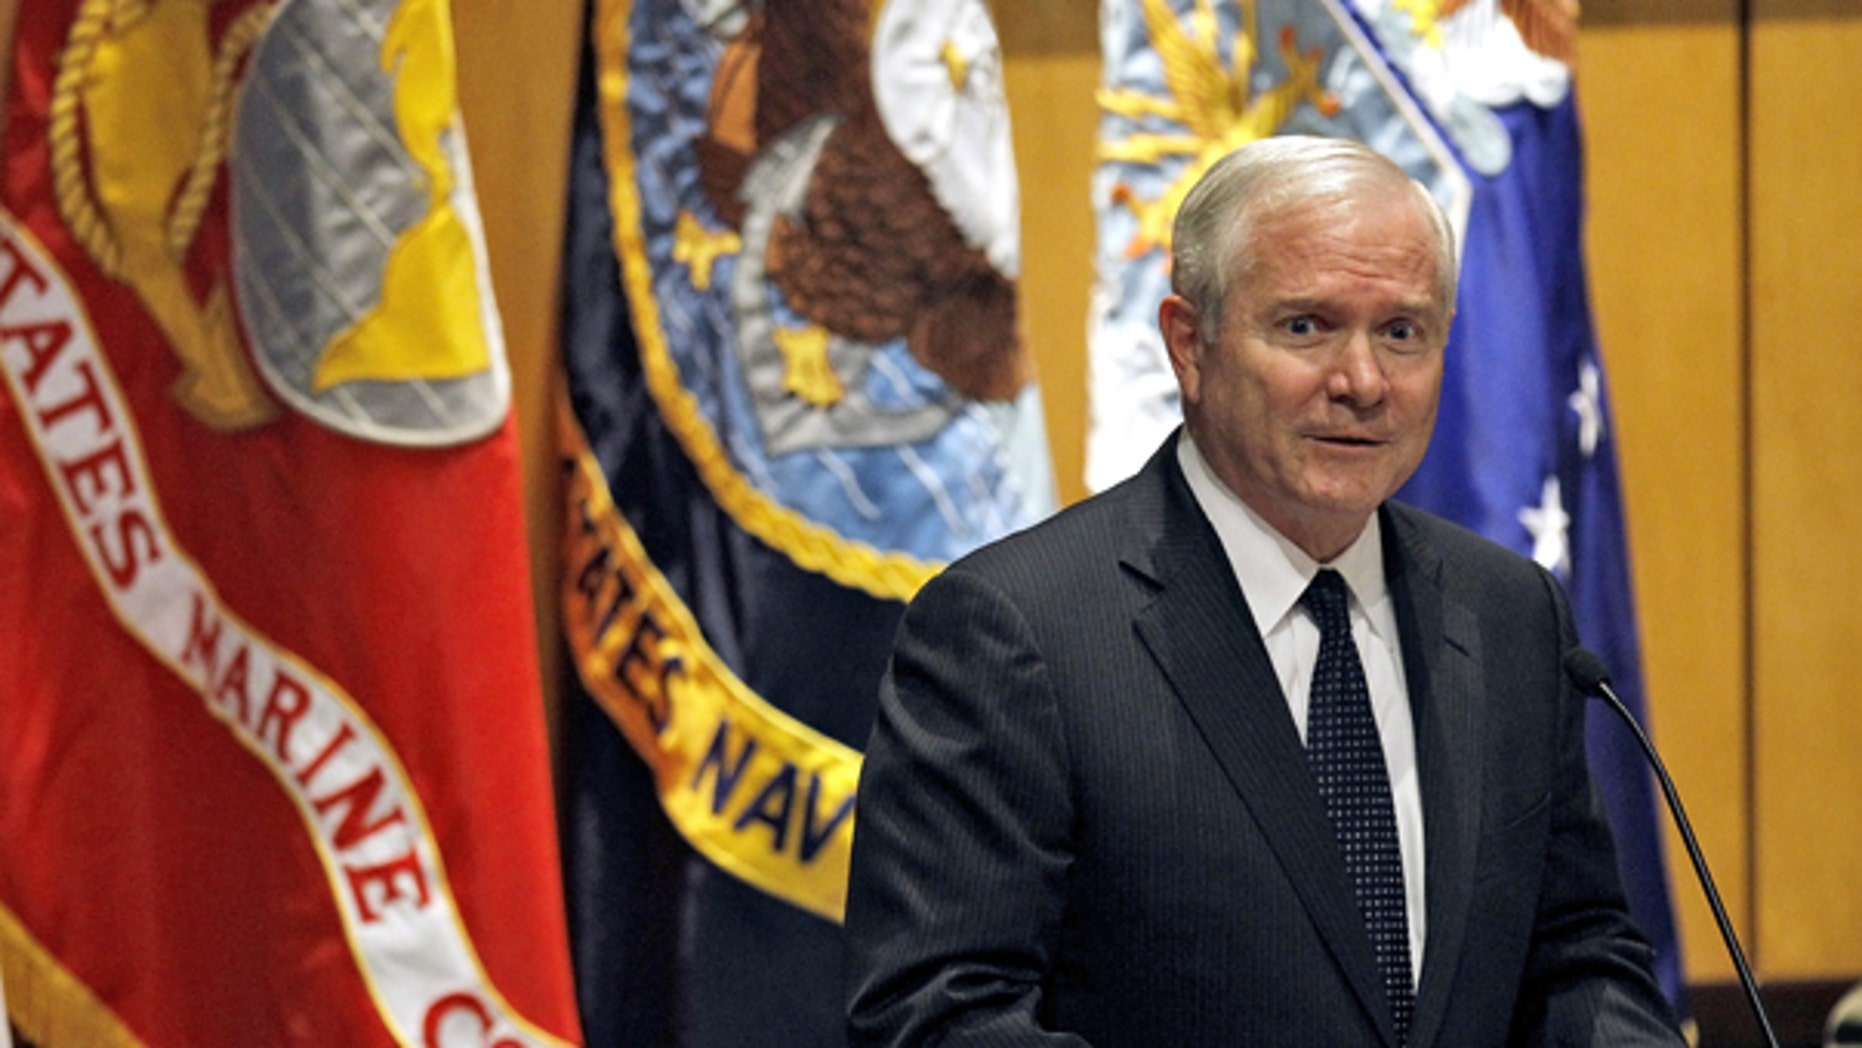 Aug. 11: Secretary of Defense Robert Gates addresses members of the United States Central Command during Assumption of Command ceremonies at MacDill Air Force Base in Tampa, Fla.